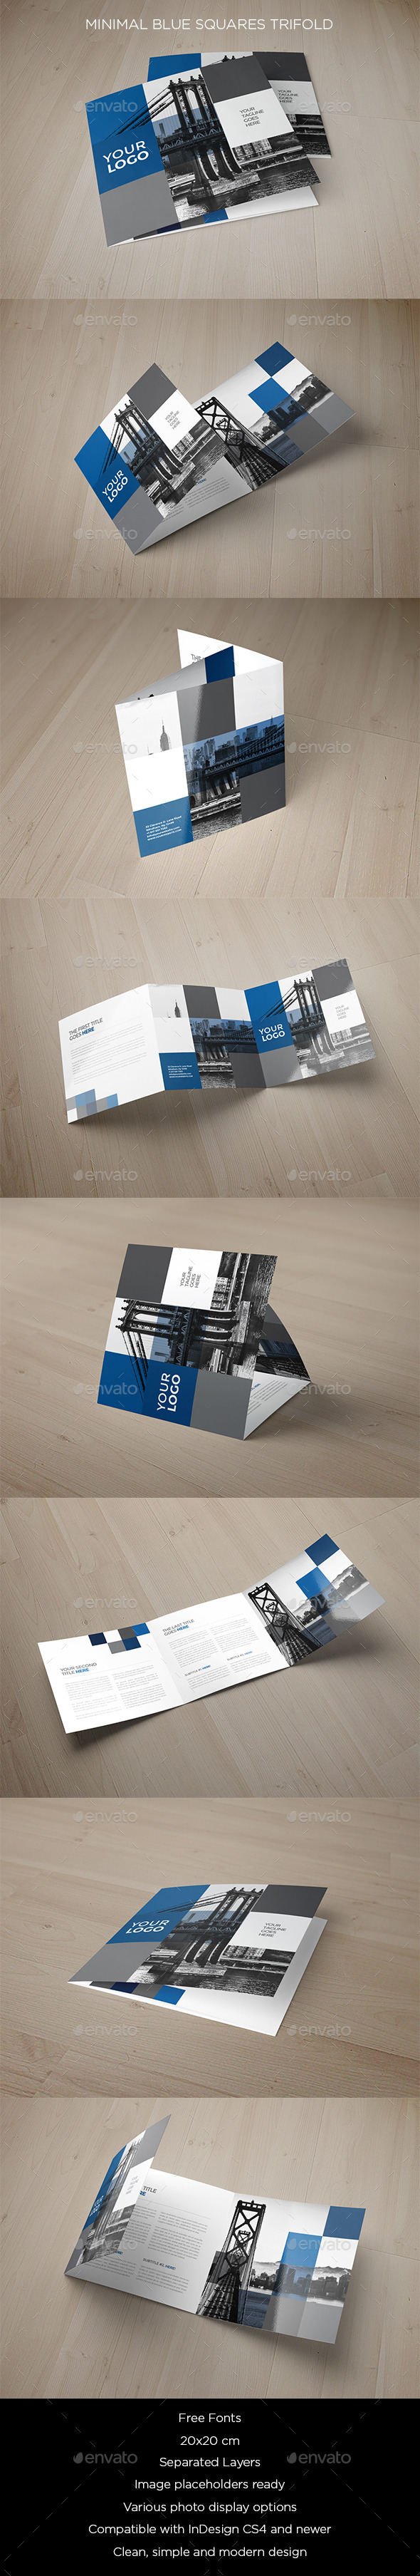 GraphicRiver Minimal Blue Squares Trifold 11790182